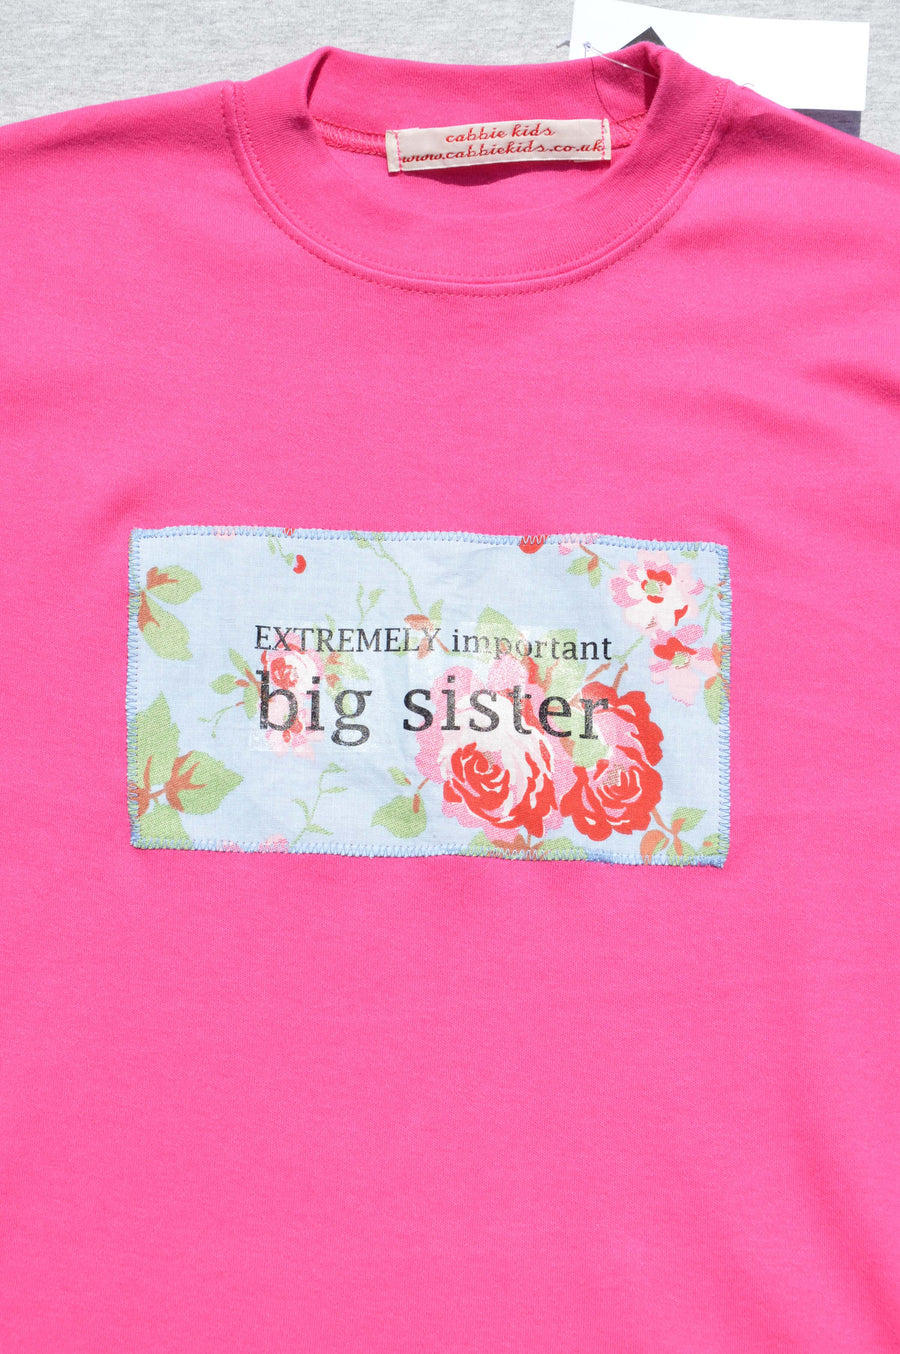 Cabbie Kids - brand new - bright pink t-shirt with 'big sister' motif, size 5-6